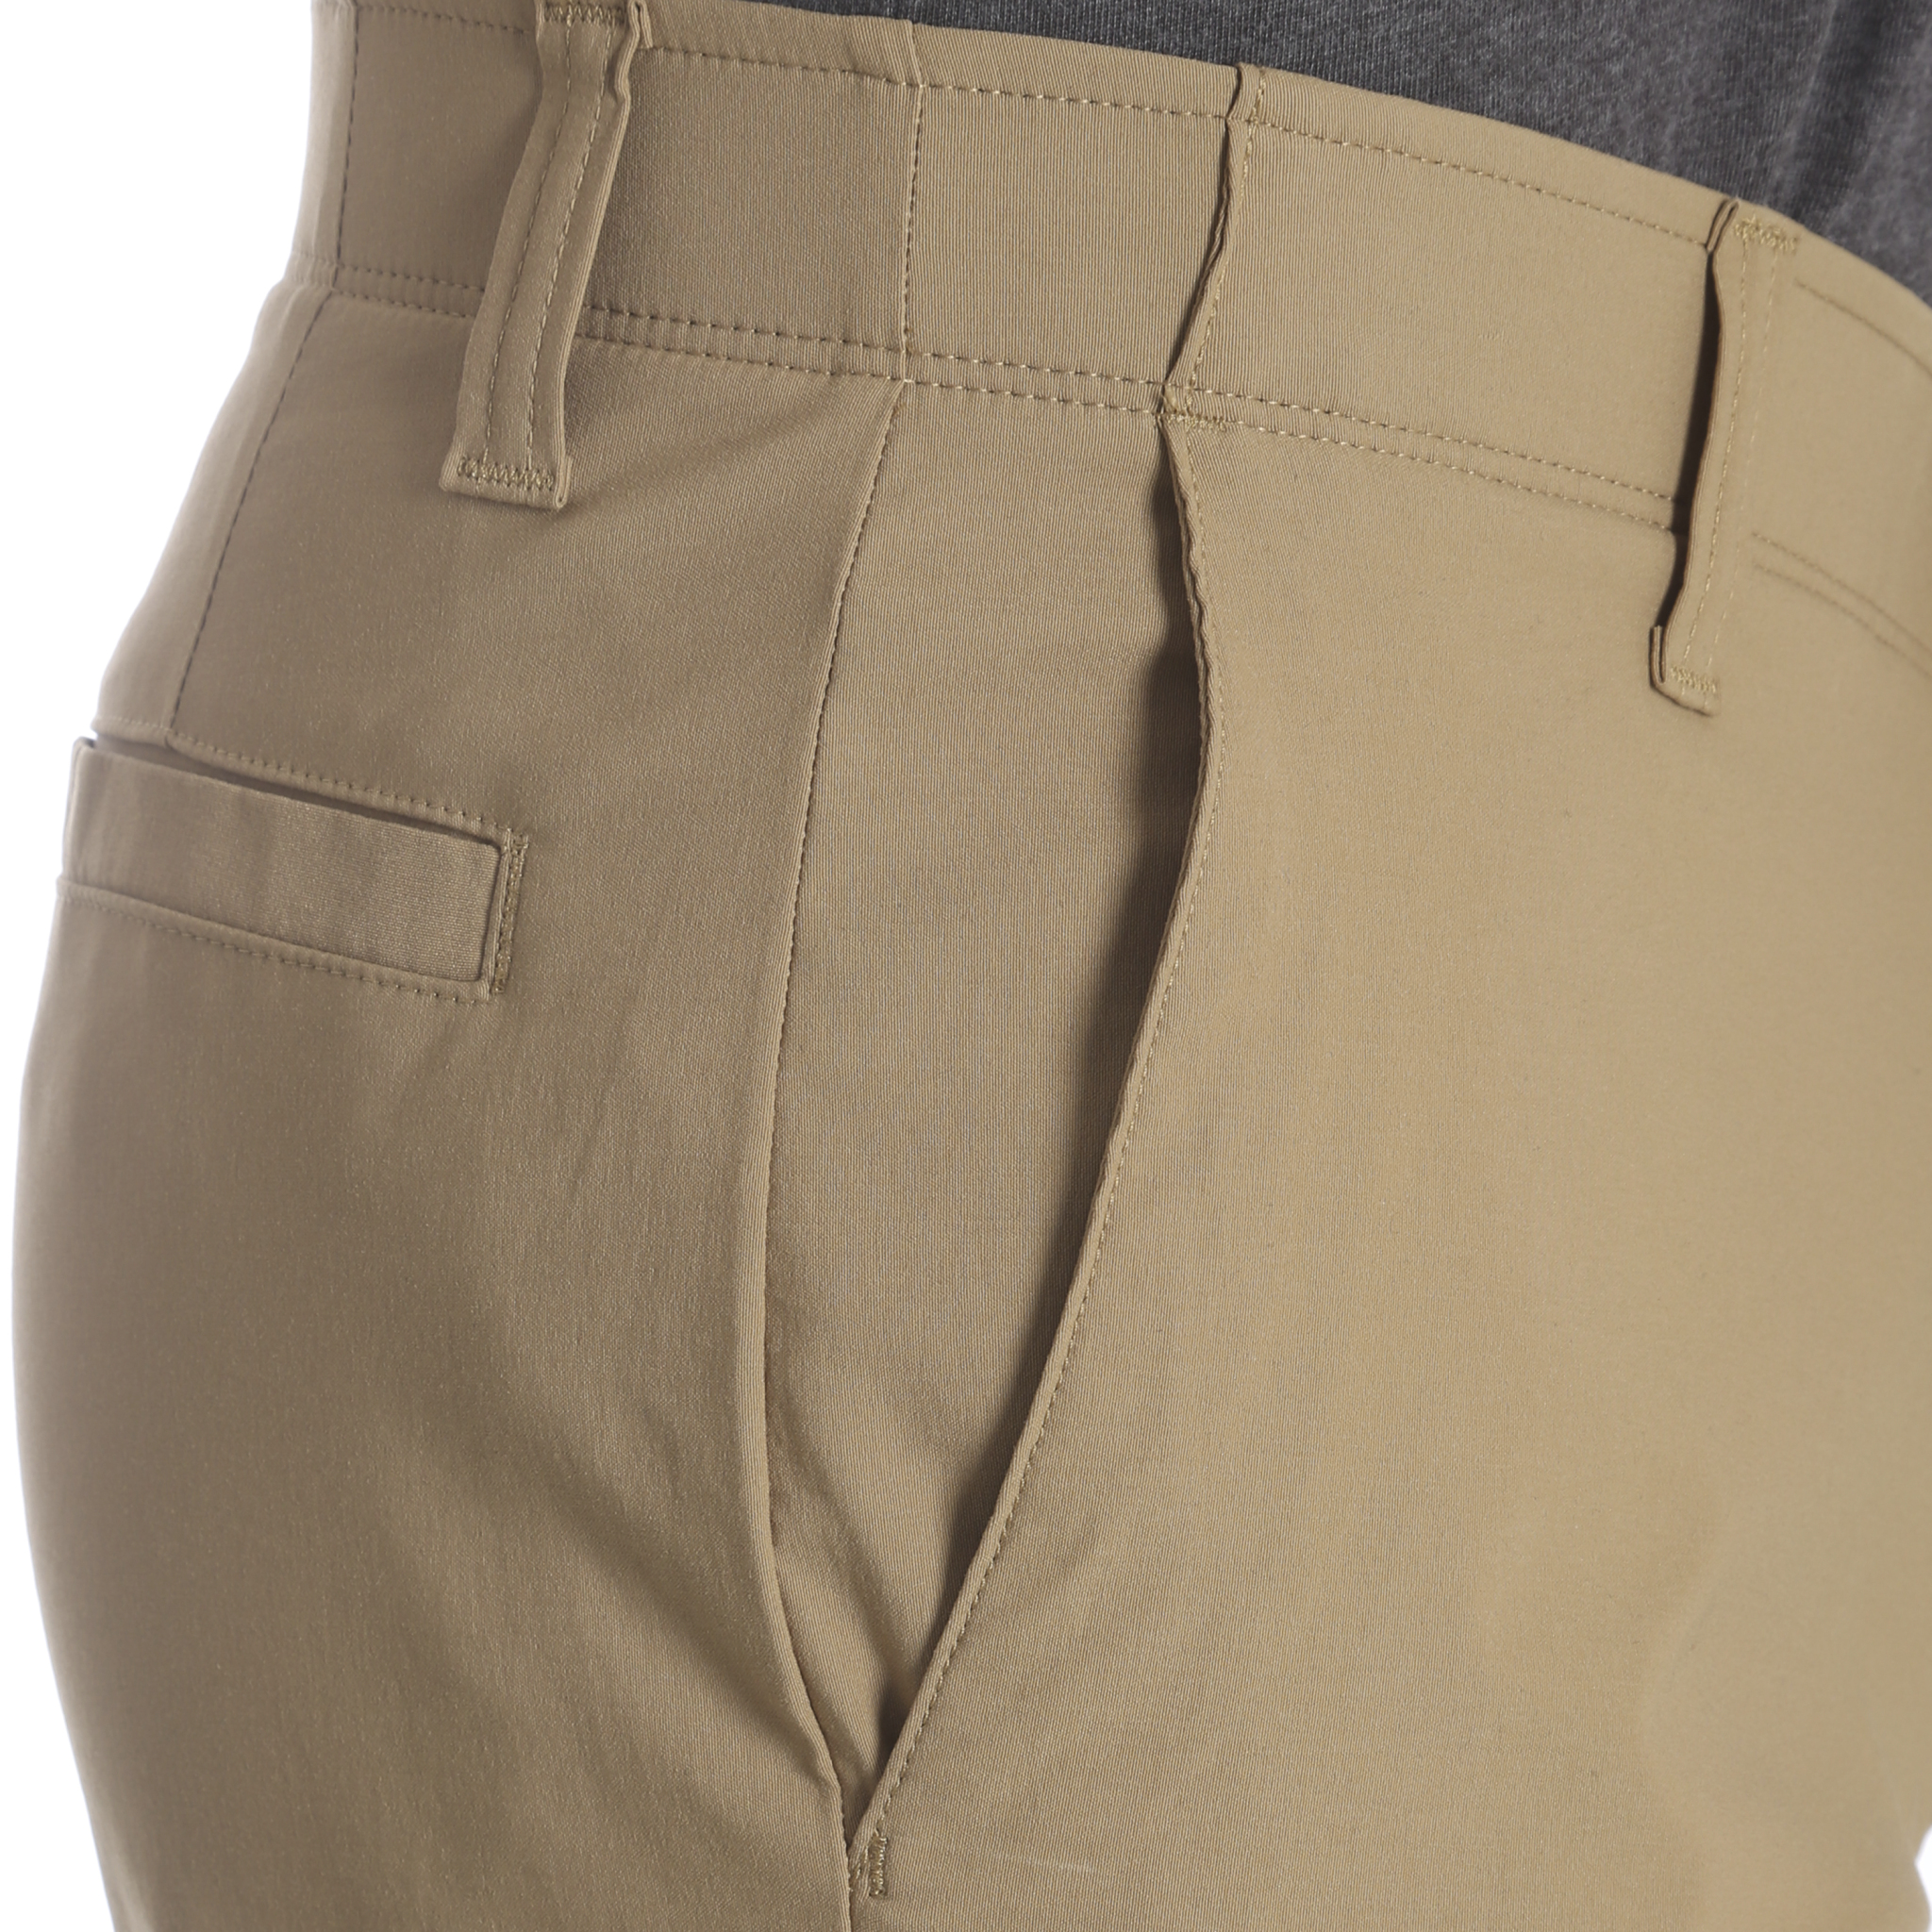 Wrangler-NEW-Solid-Men-039-s-Performance-Series-Outdoor-Comfort-Straight-Leg-Pants thumbnail 6